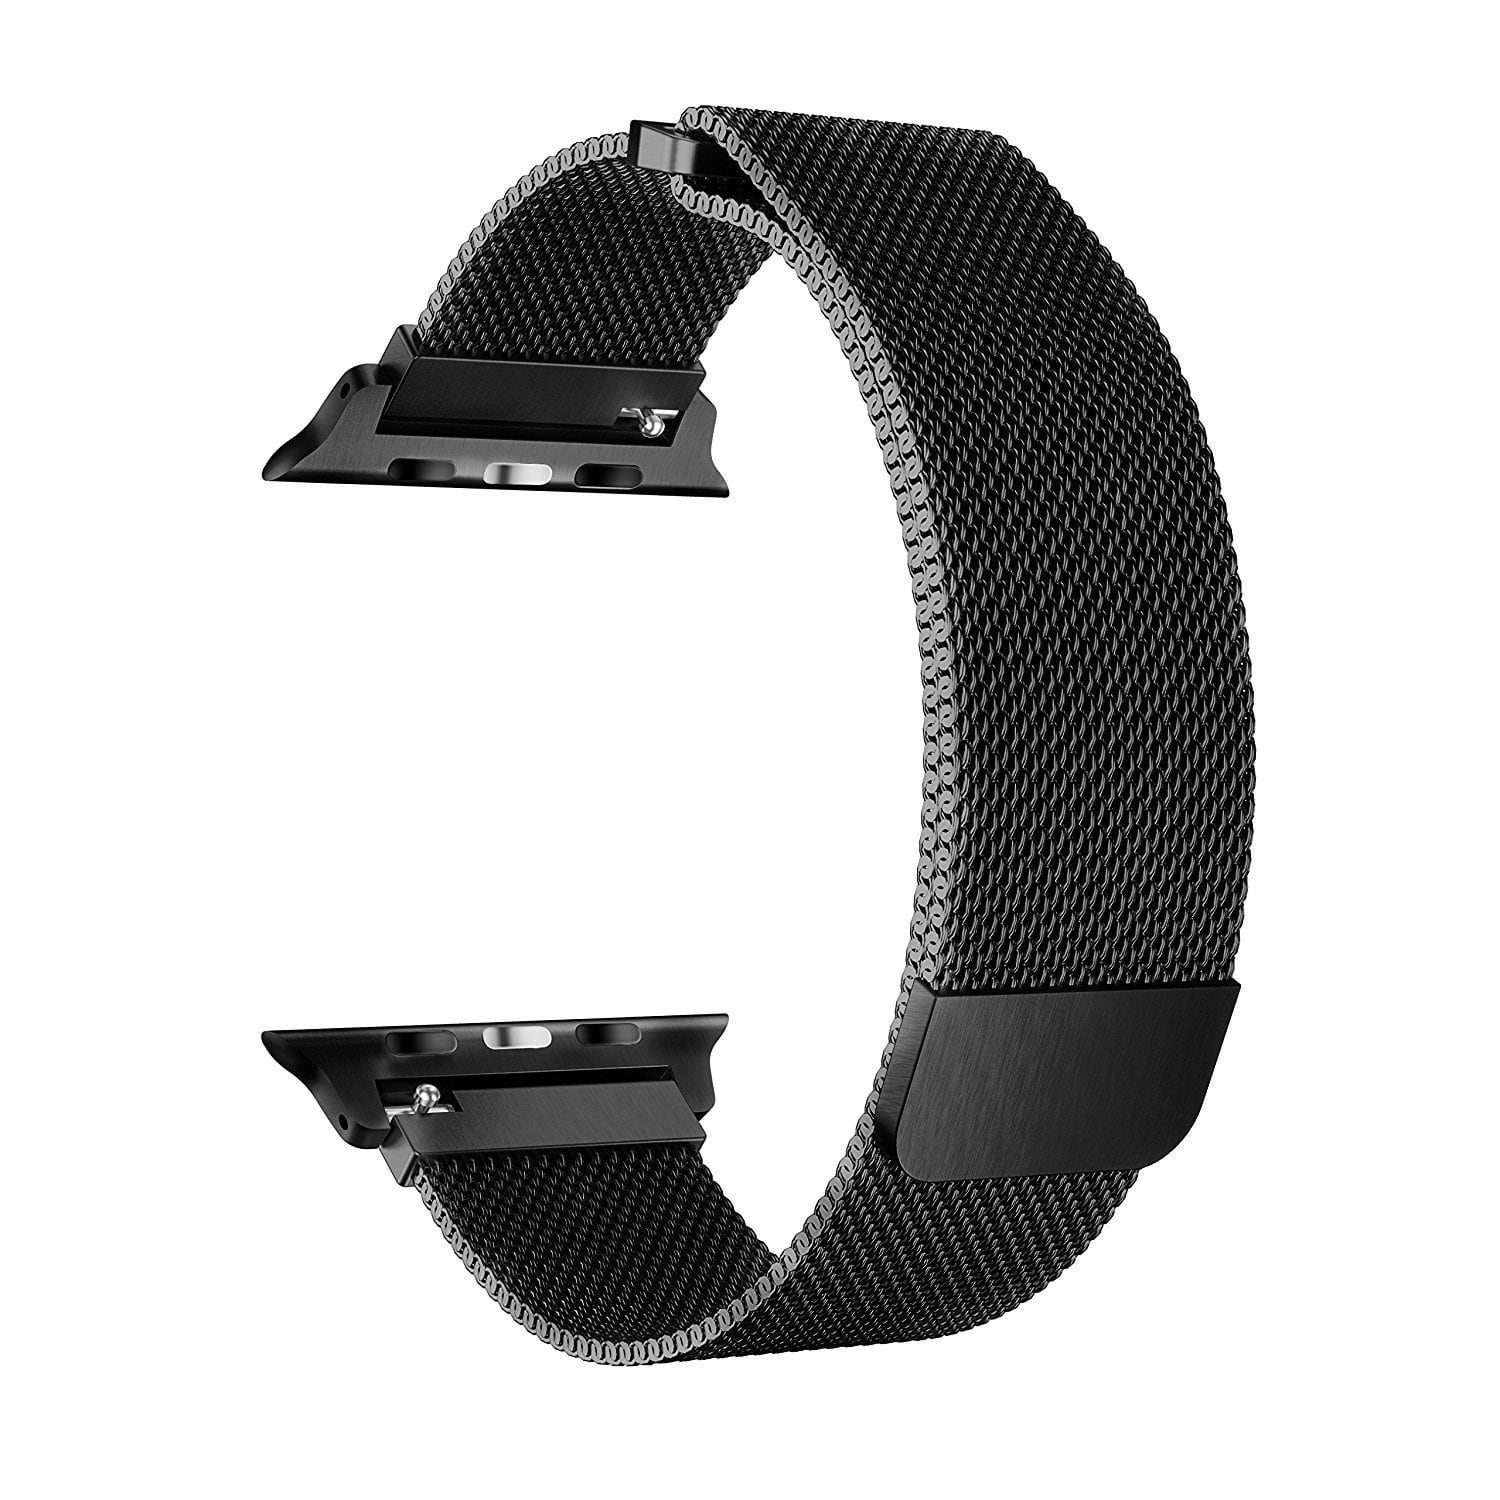 Apple Watch Band 38mm 42mm, Mesh Milanese Loop Stainless Steel iWatch Band for Apple Watch Series 3 2 1 - $5.99